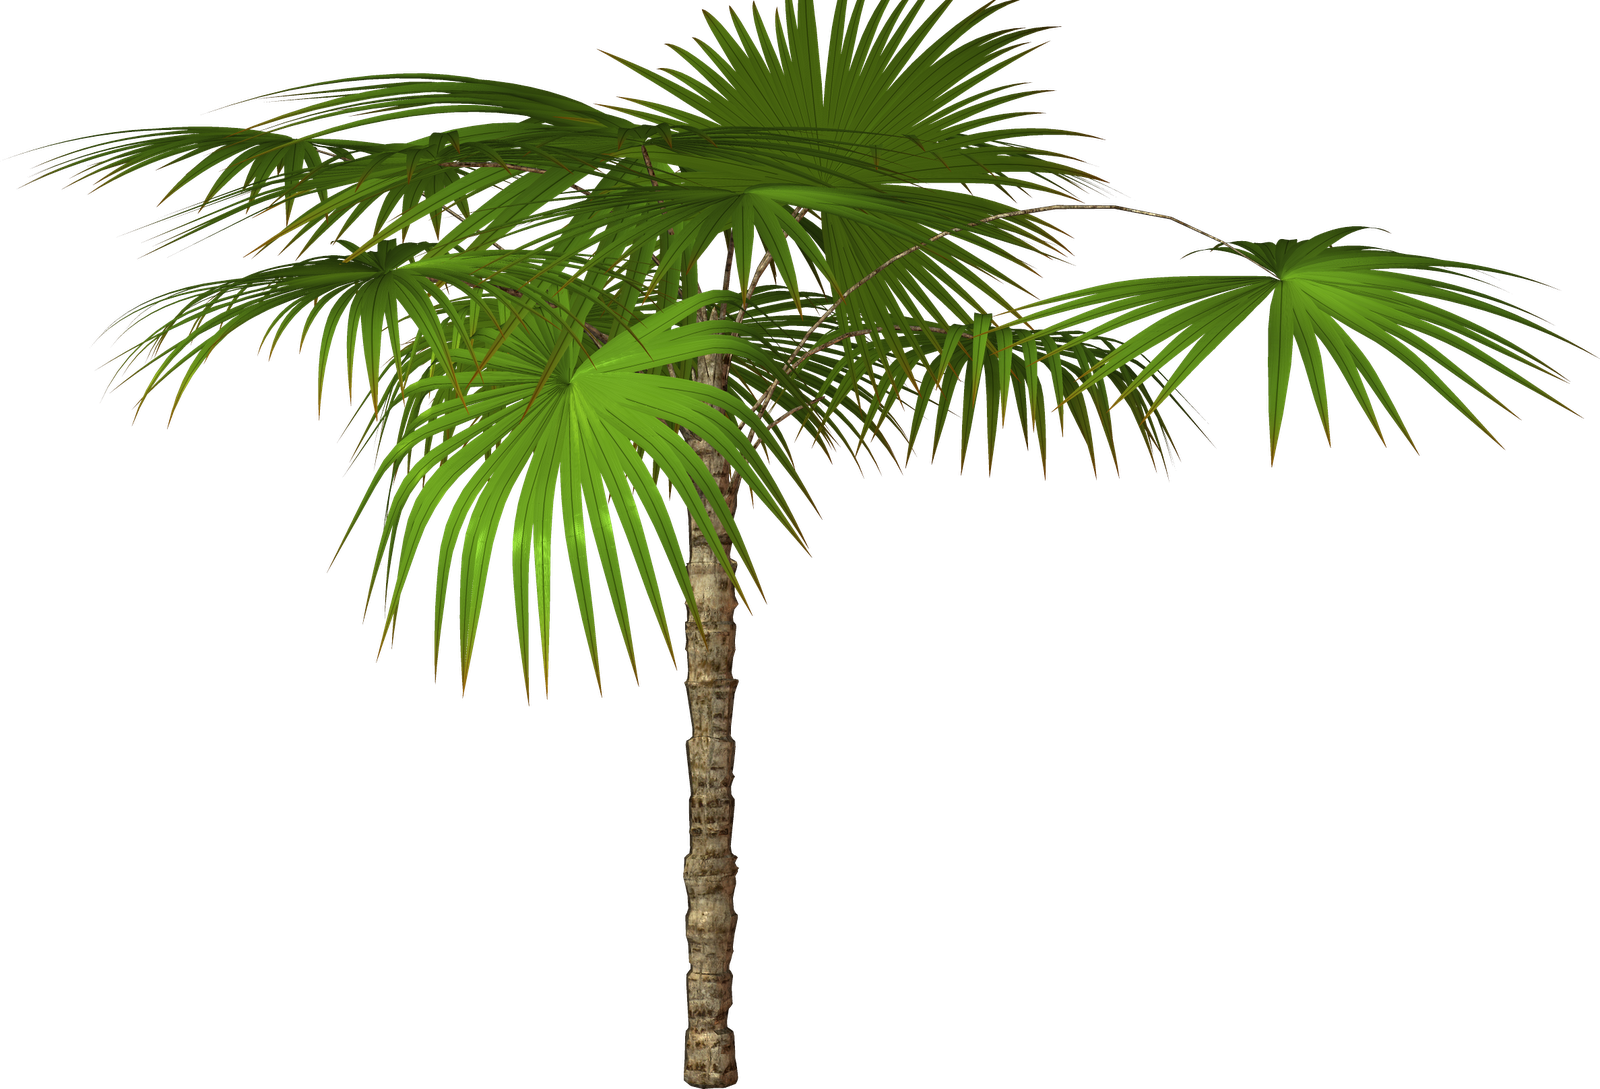 palm tree clip art - photo #23